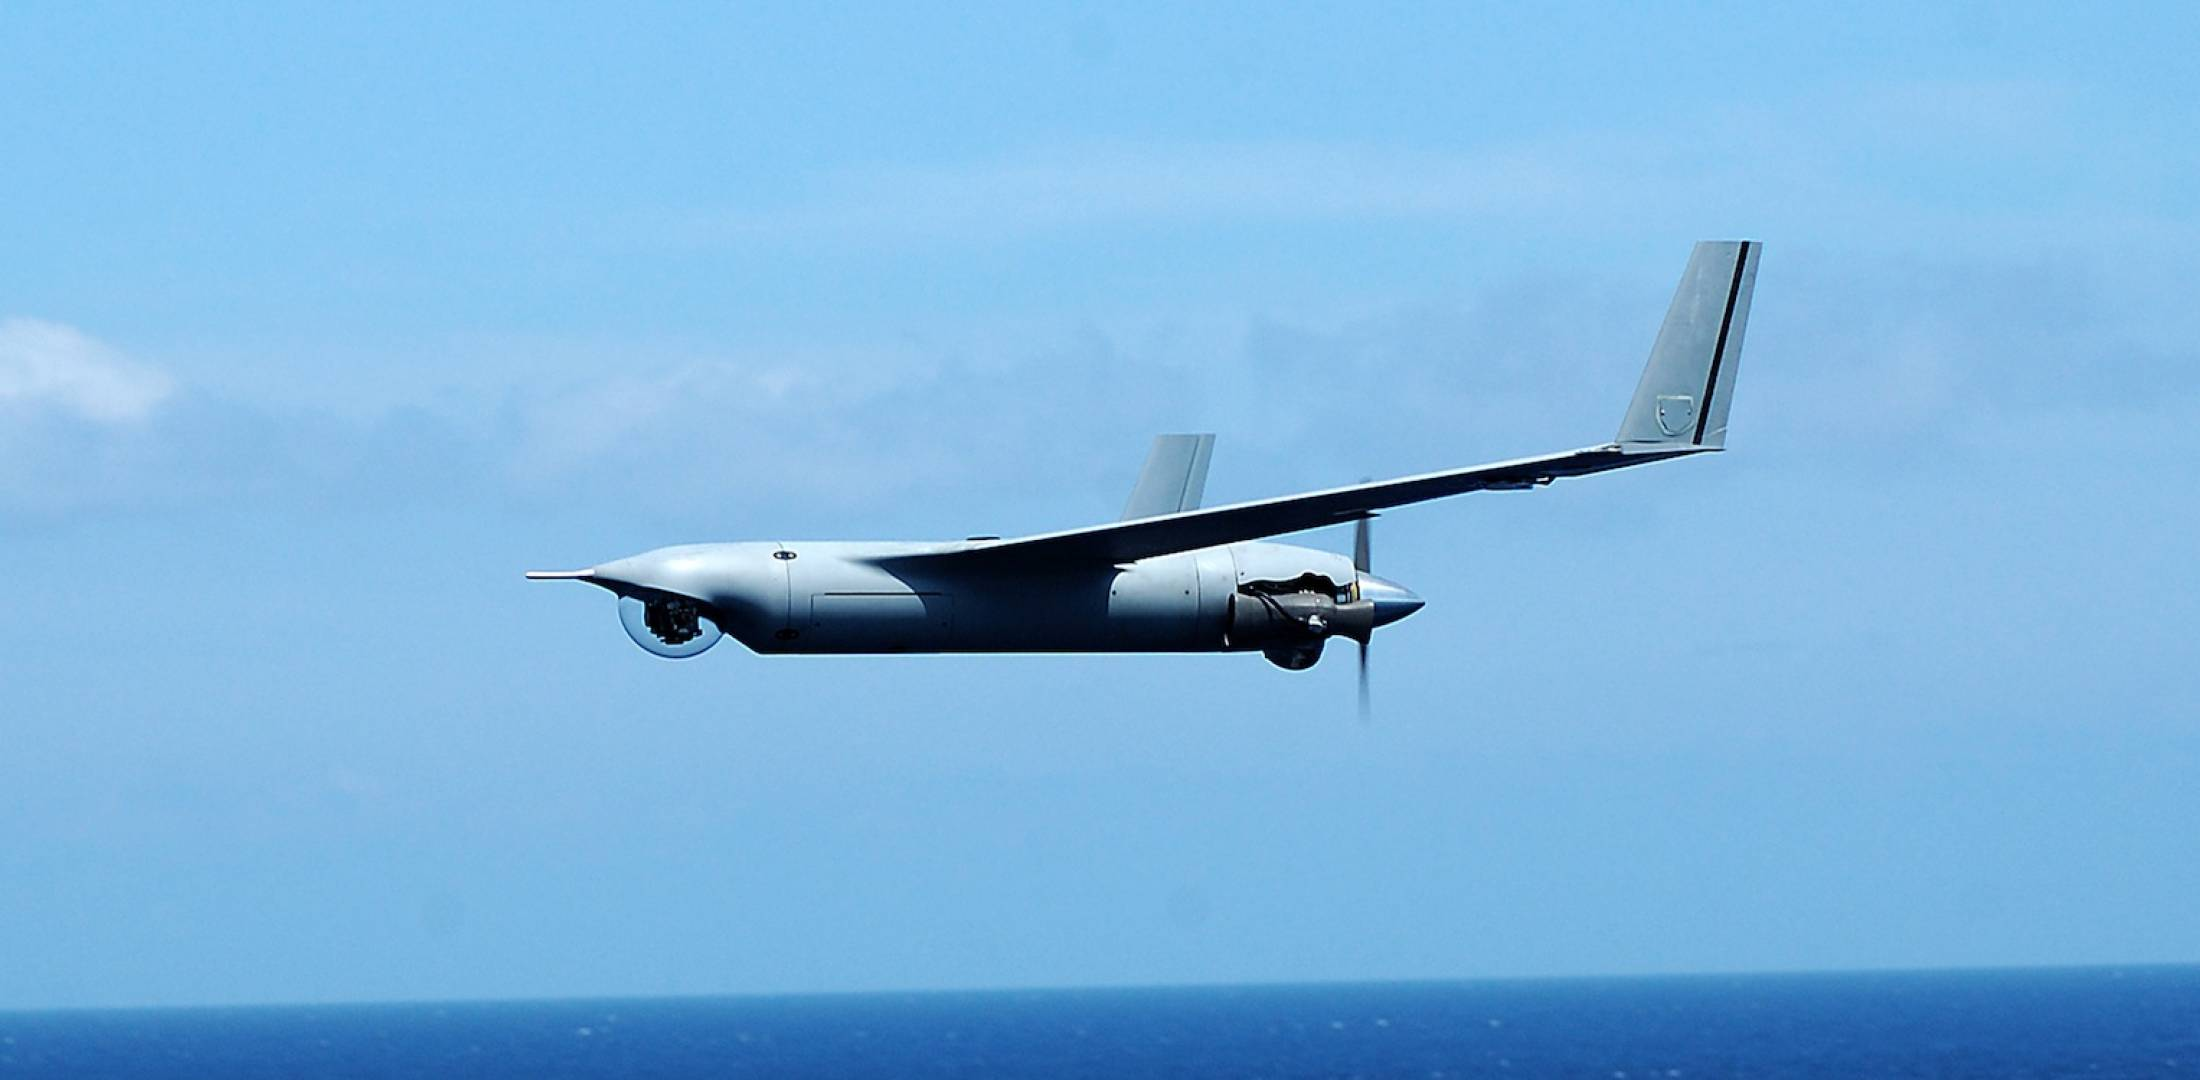 navy drone aircraft carrier with Insitu Supply Scaneagle Surveillance Drones Afghanistan on Insitu Supply Scaneagle Surveillance Drones Afghanistan further Plane 19 as well 04 08 2017 furthermore T4068 Sous Marins D Attaque Classe Upholder furthermore 20140418 atd X Shinshin.